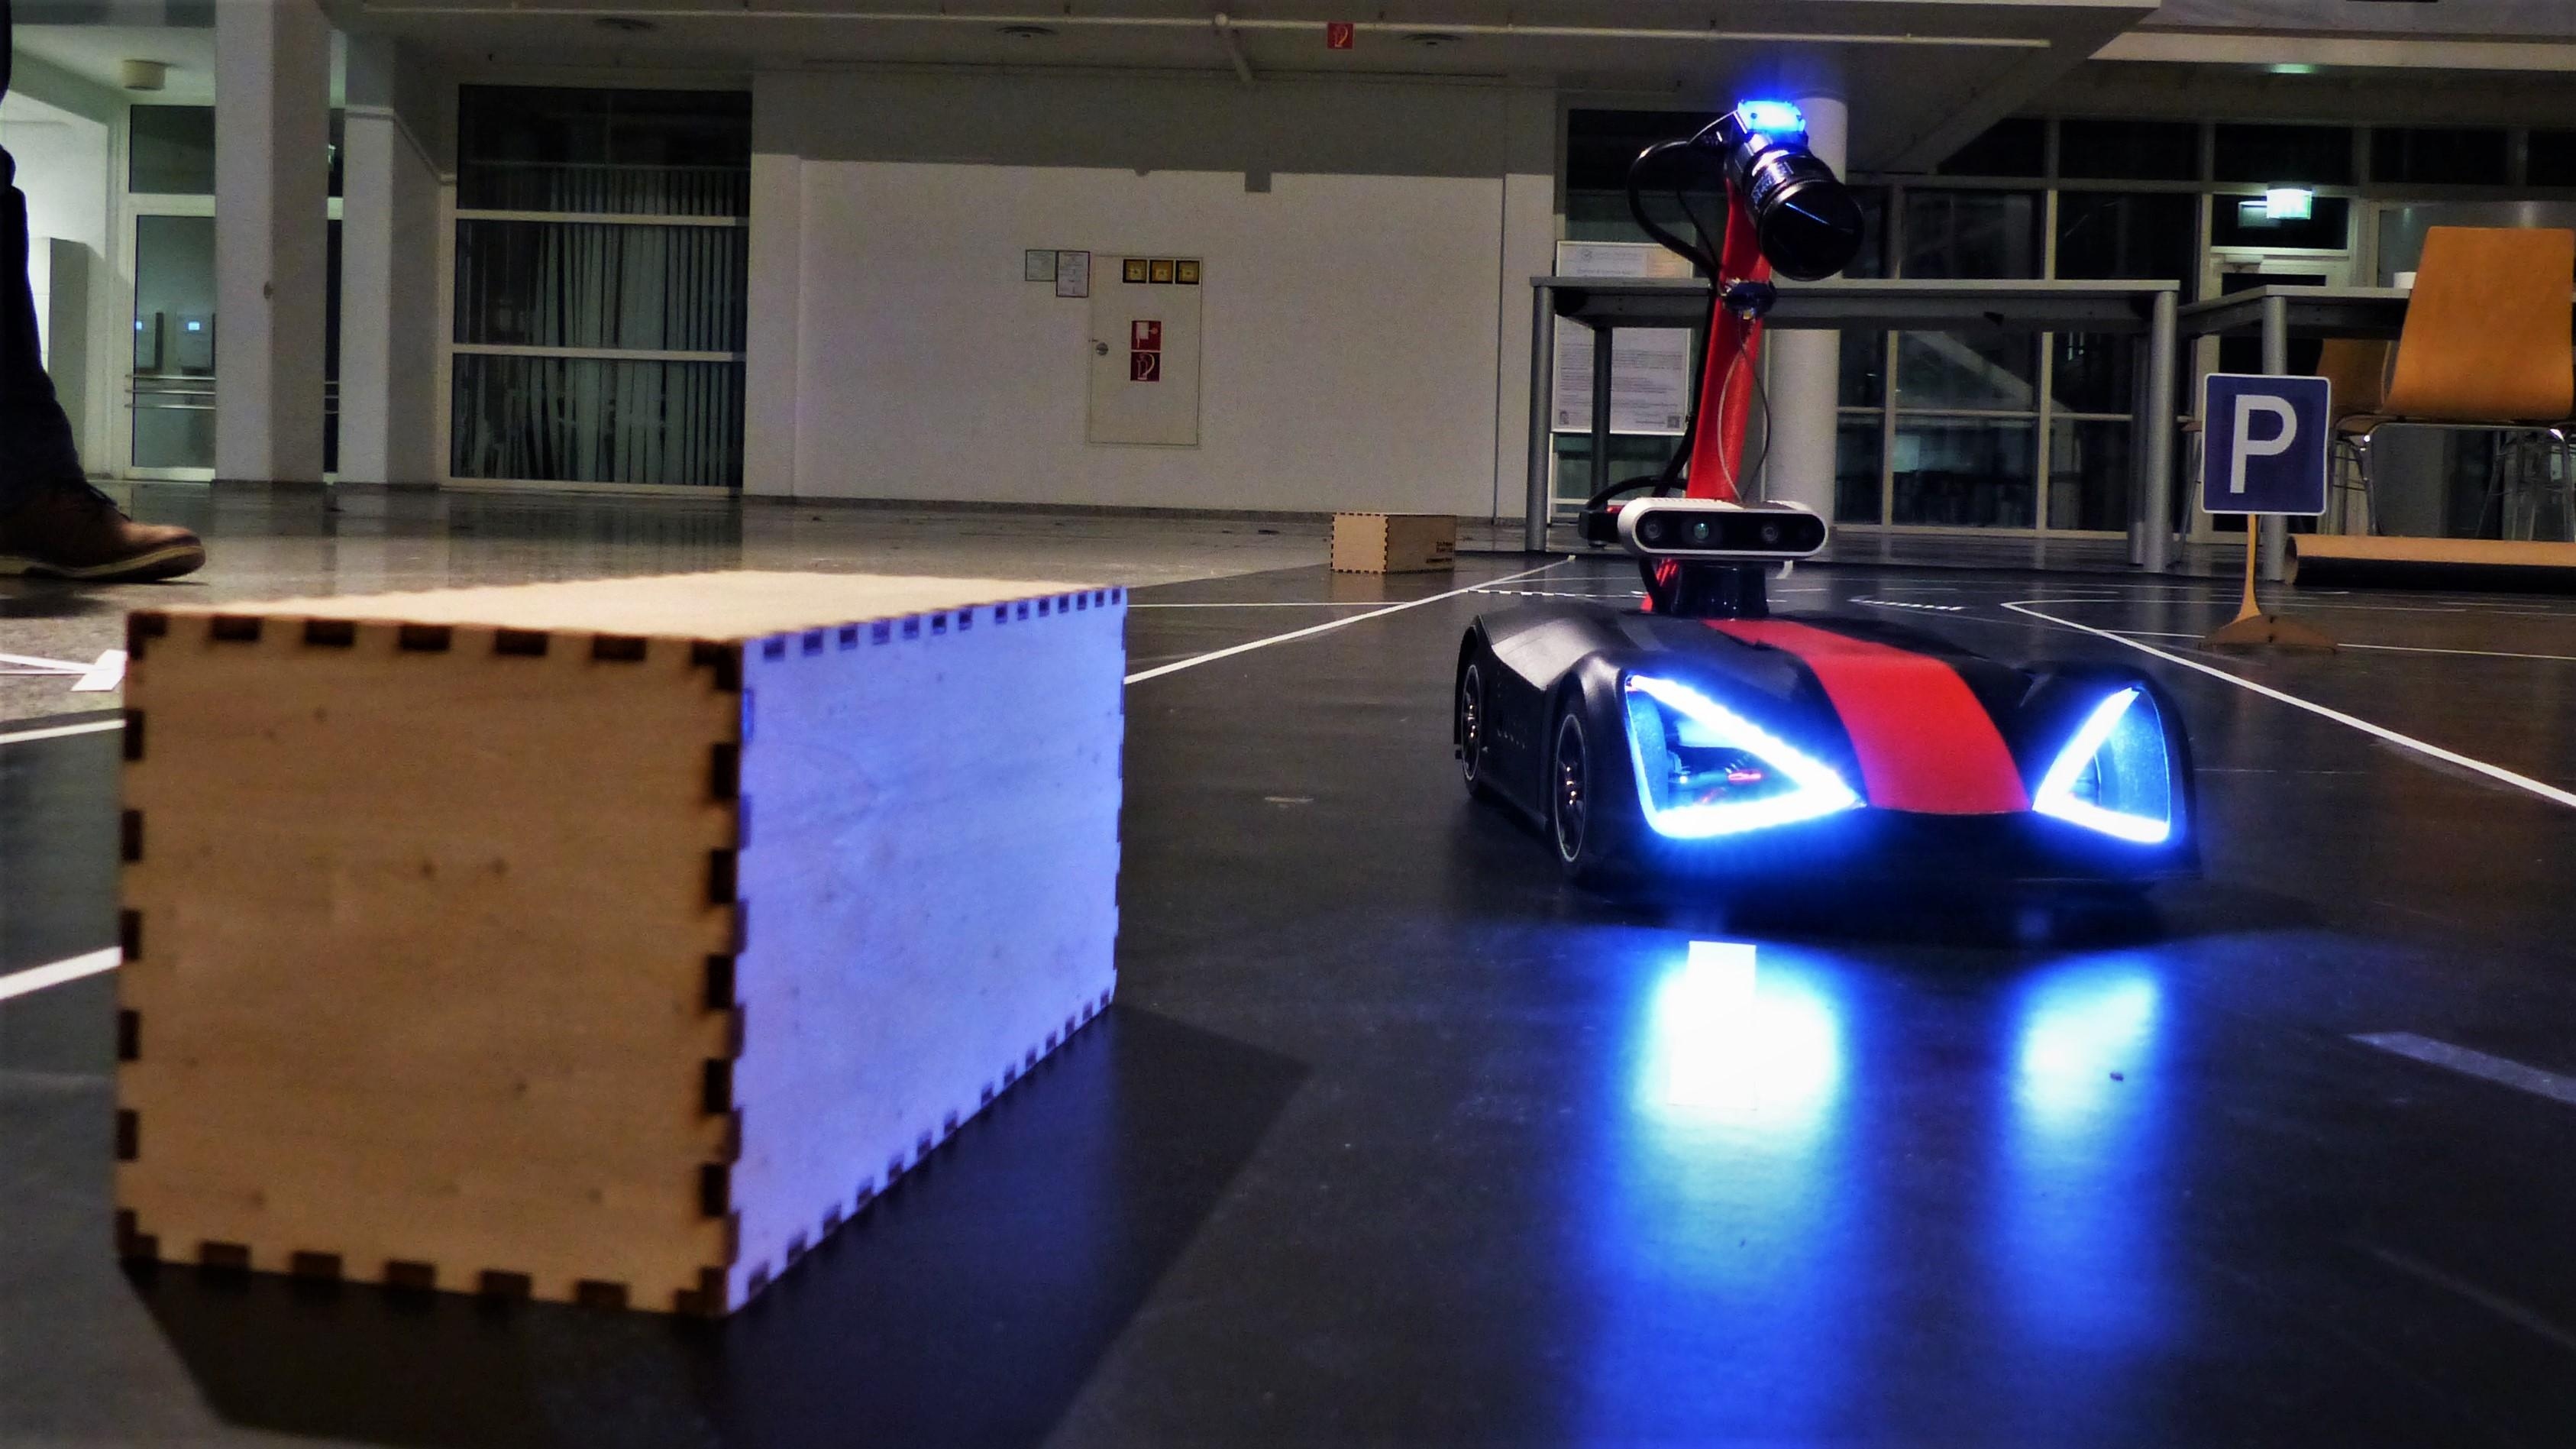 Robot model car is driving on a miniature street obstacle course